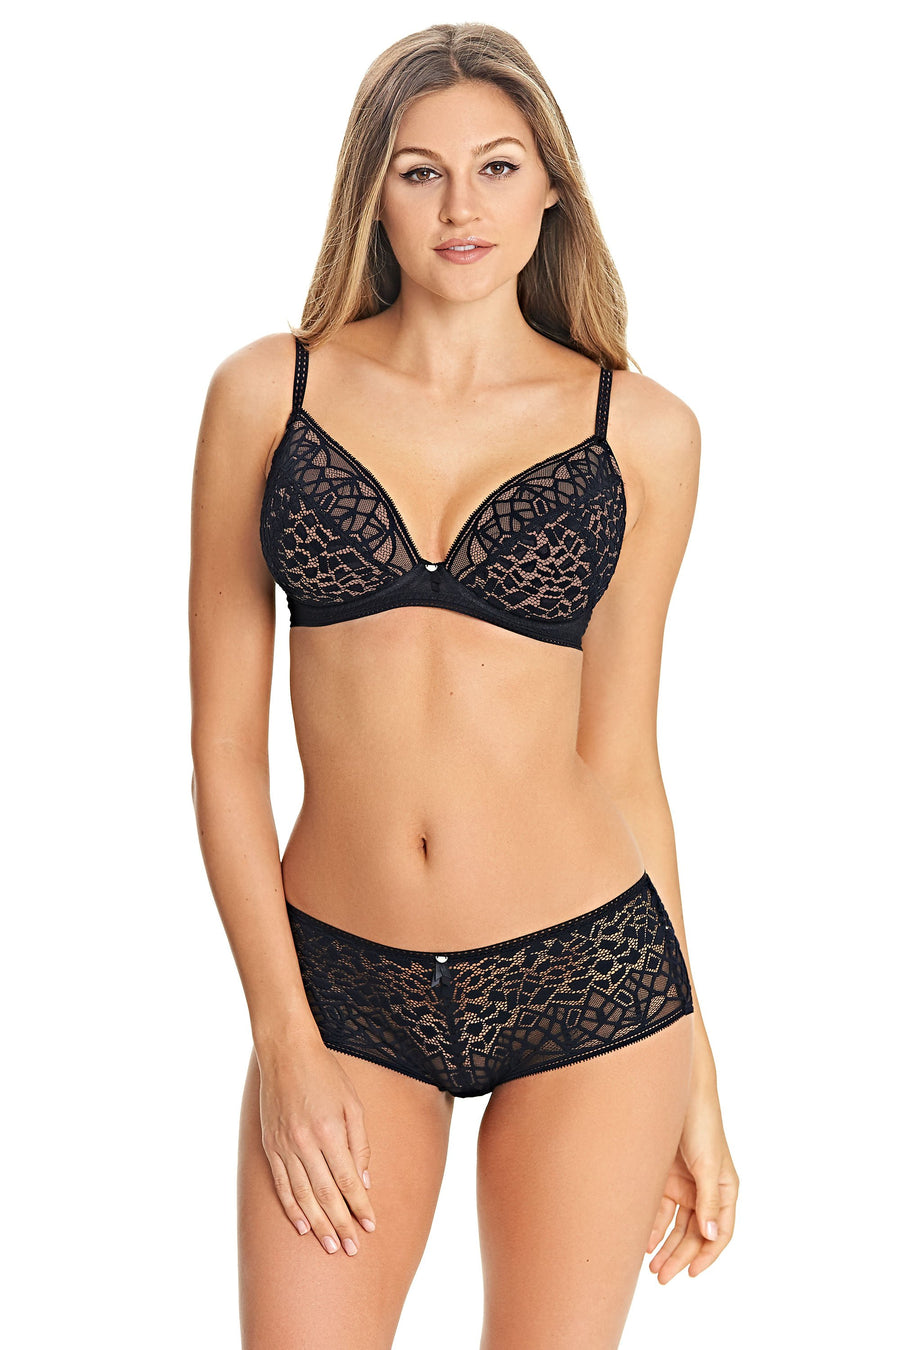 Freya - Soiree Lace Black Short